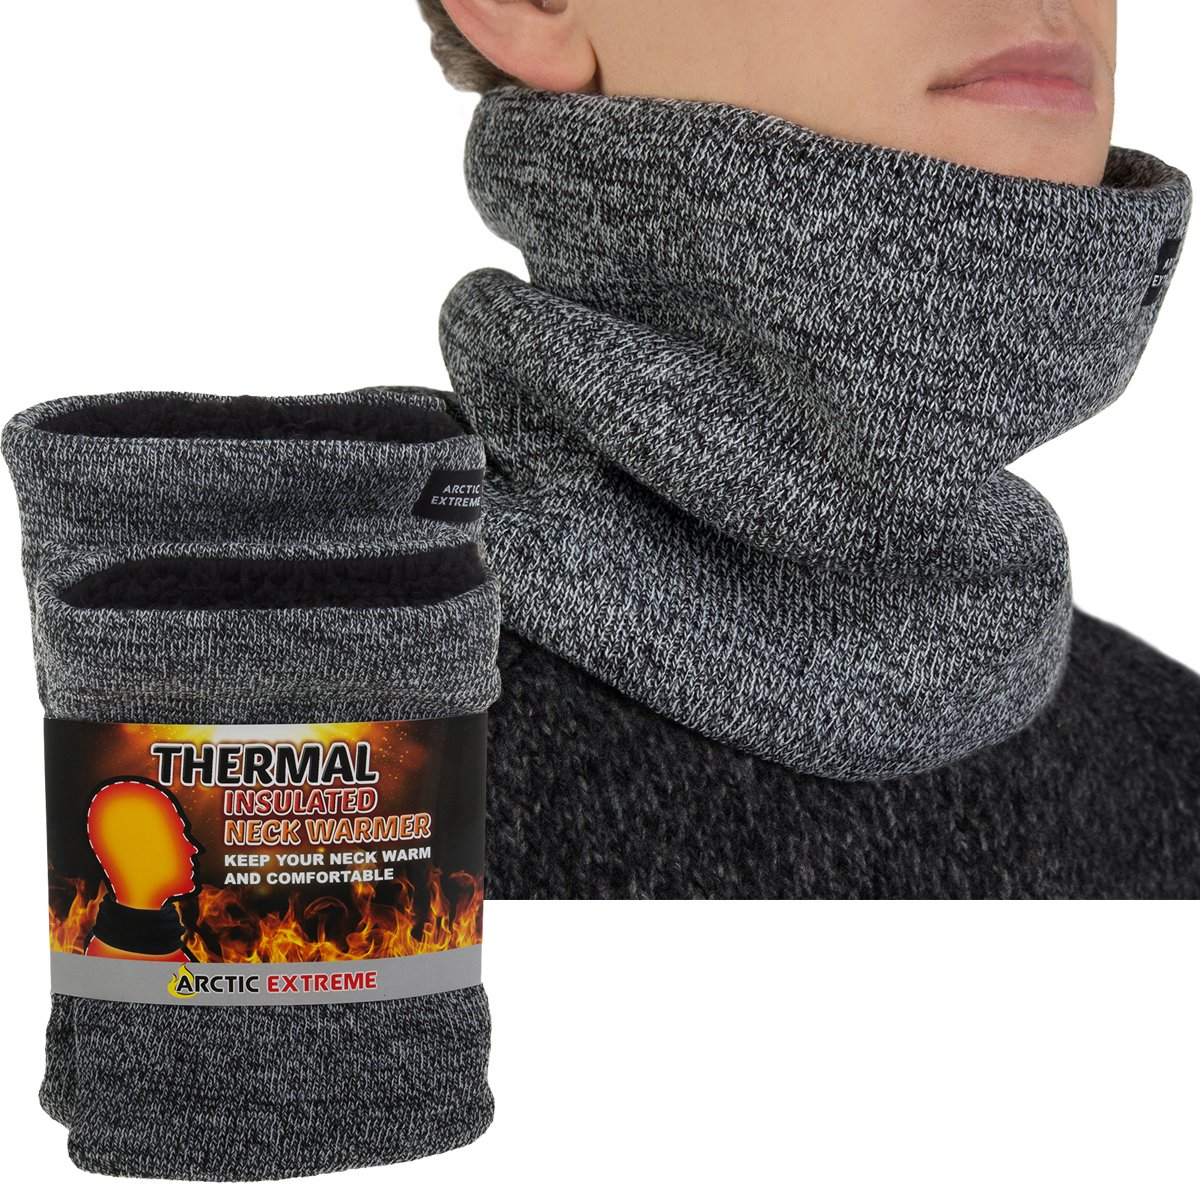 2 Pack Arctic Extreme Thick Heat Trapping Thermal Insulated Fleece Lined Neck Warmers Gaiters Unisex Cold Weather Gear Winter Face Mask